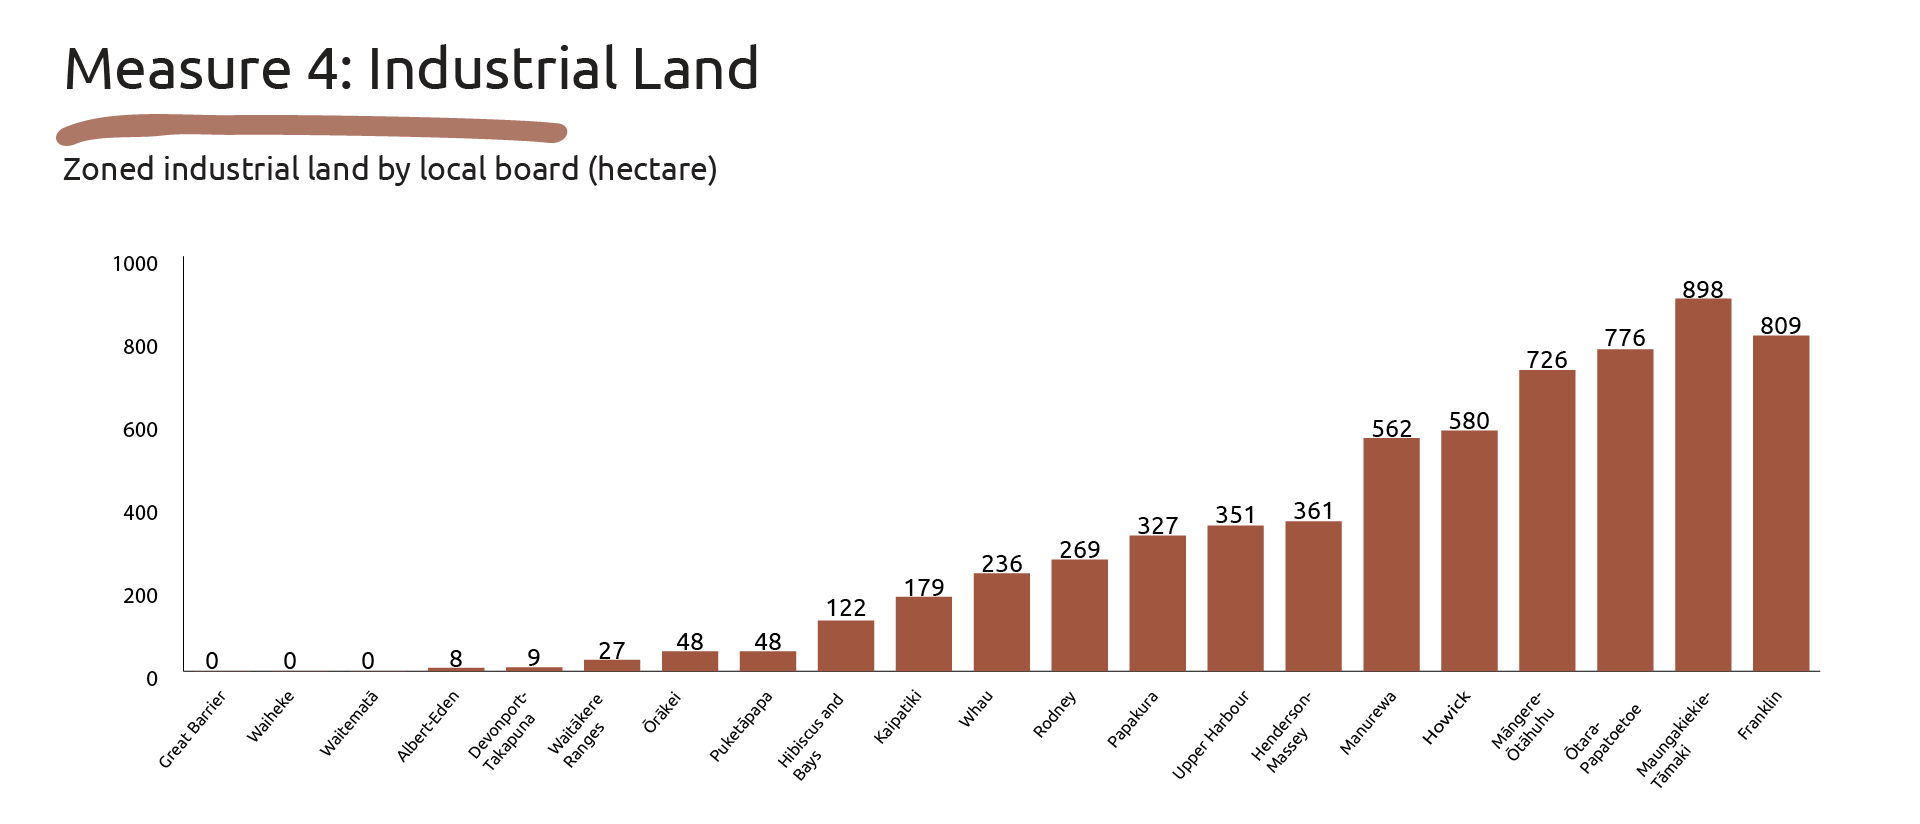 Image showing the data for Measure 4: Industrial Land.